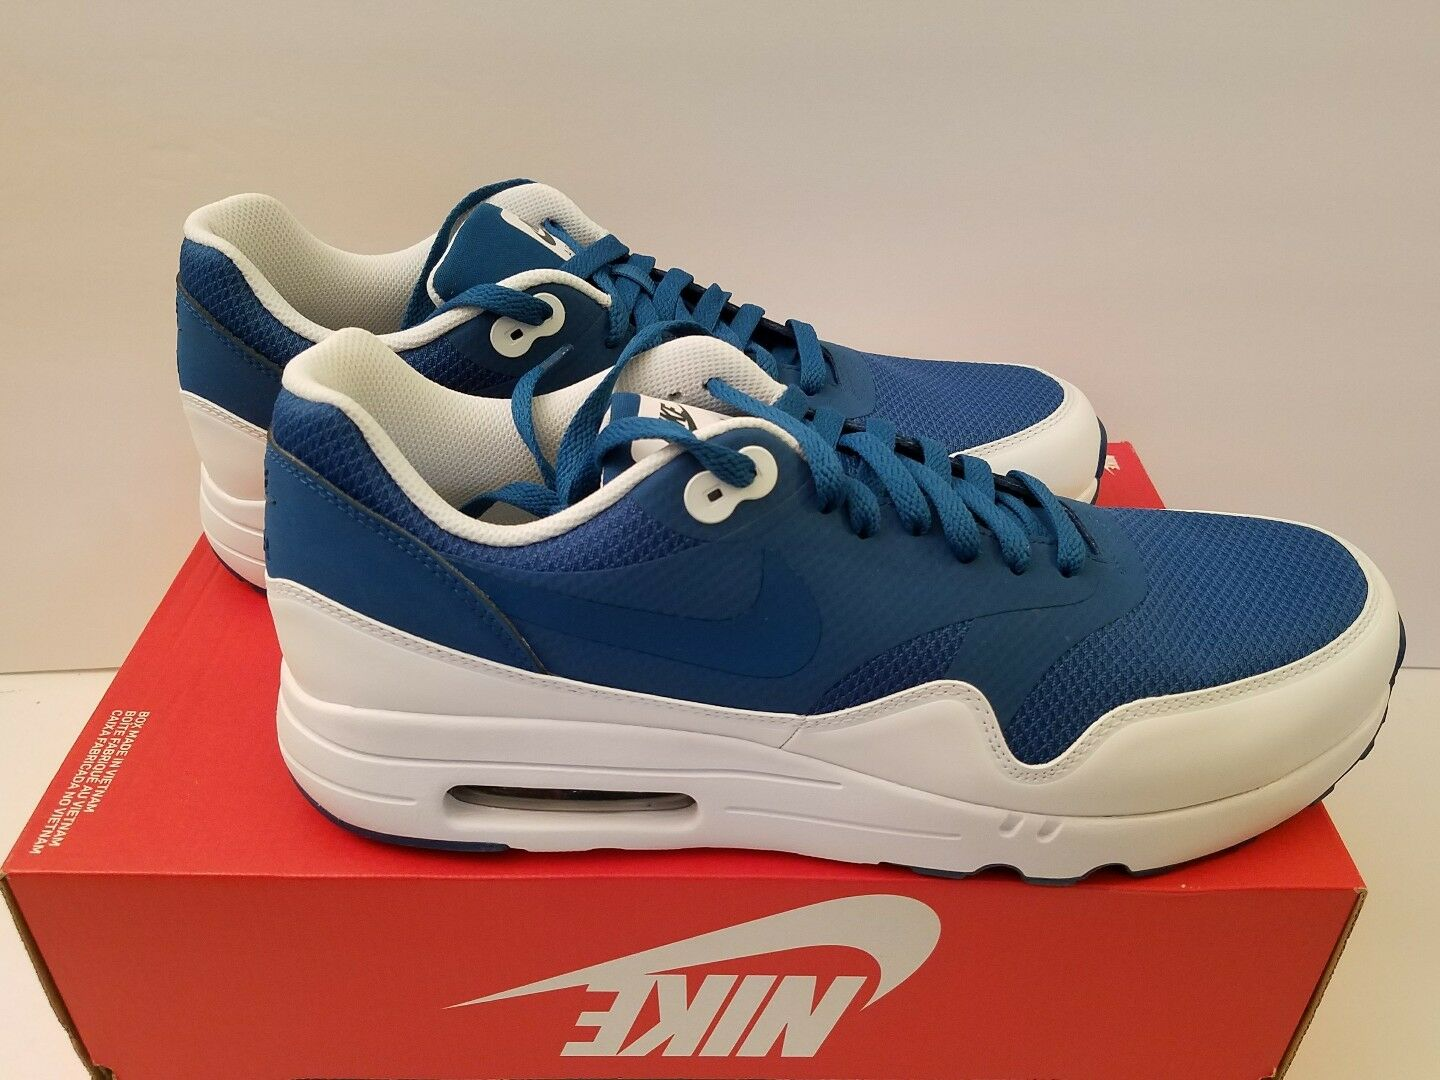 NIKE AIR MAX 1 ULTRA 2.0 ESSENTIAL Size 12.5 INDUSTRIAL blueE WHITE-ARMORY NAVY